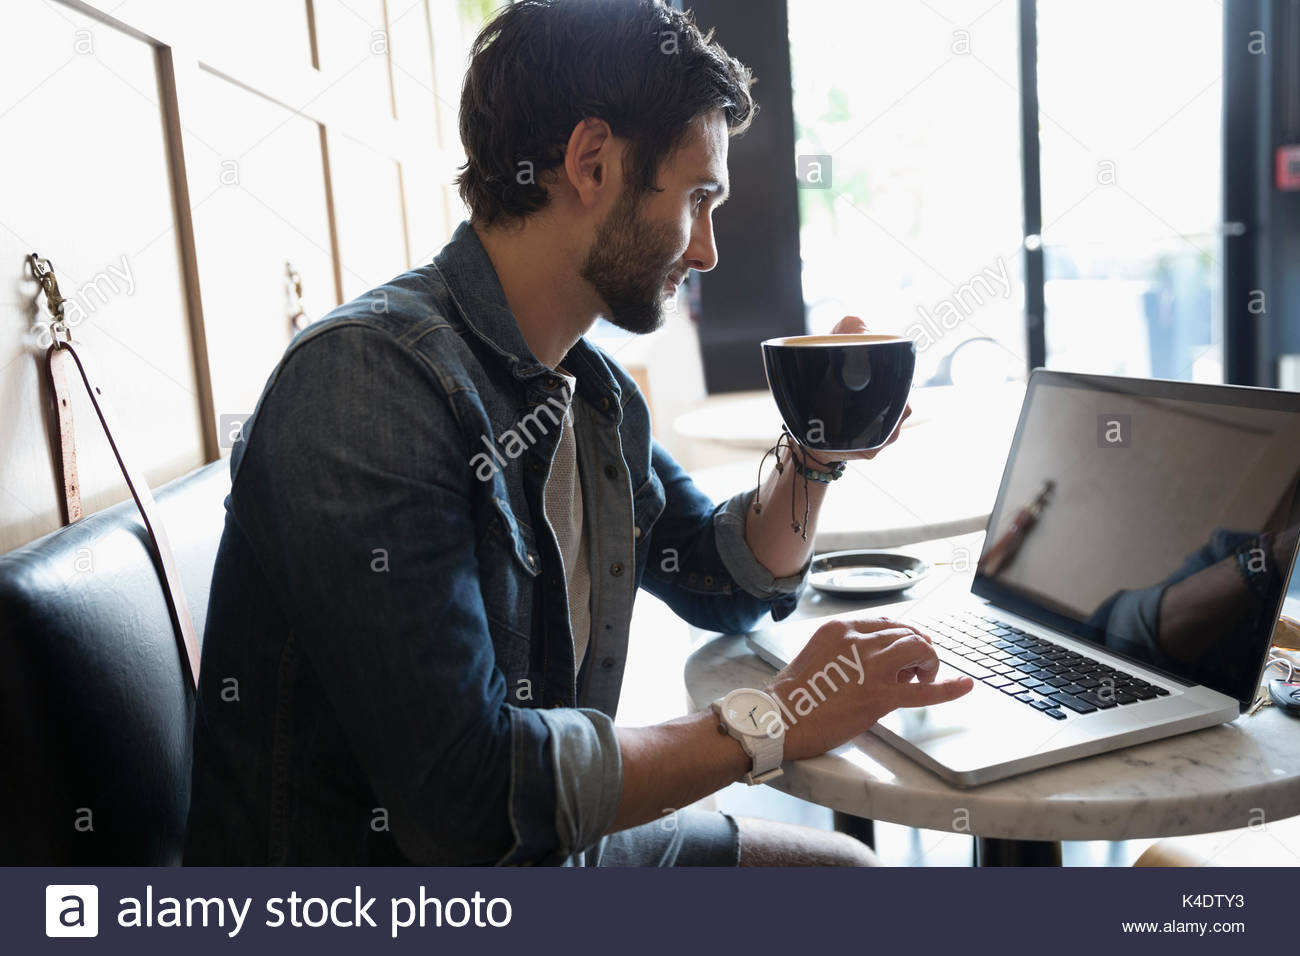 Man using laptop and drinking coffee in cafe - Stock Image